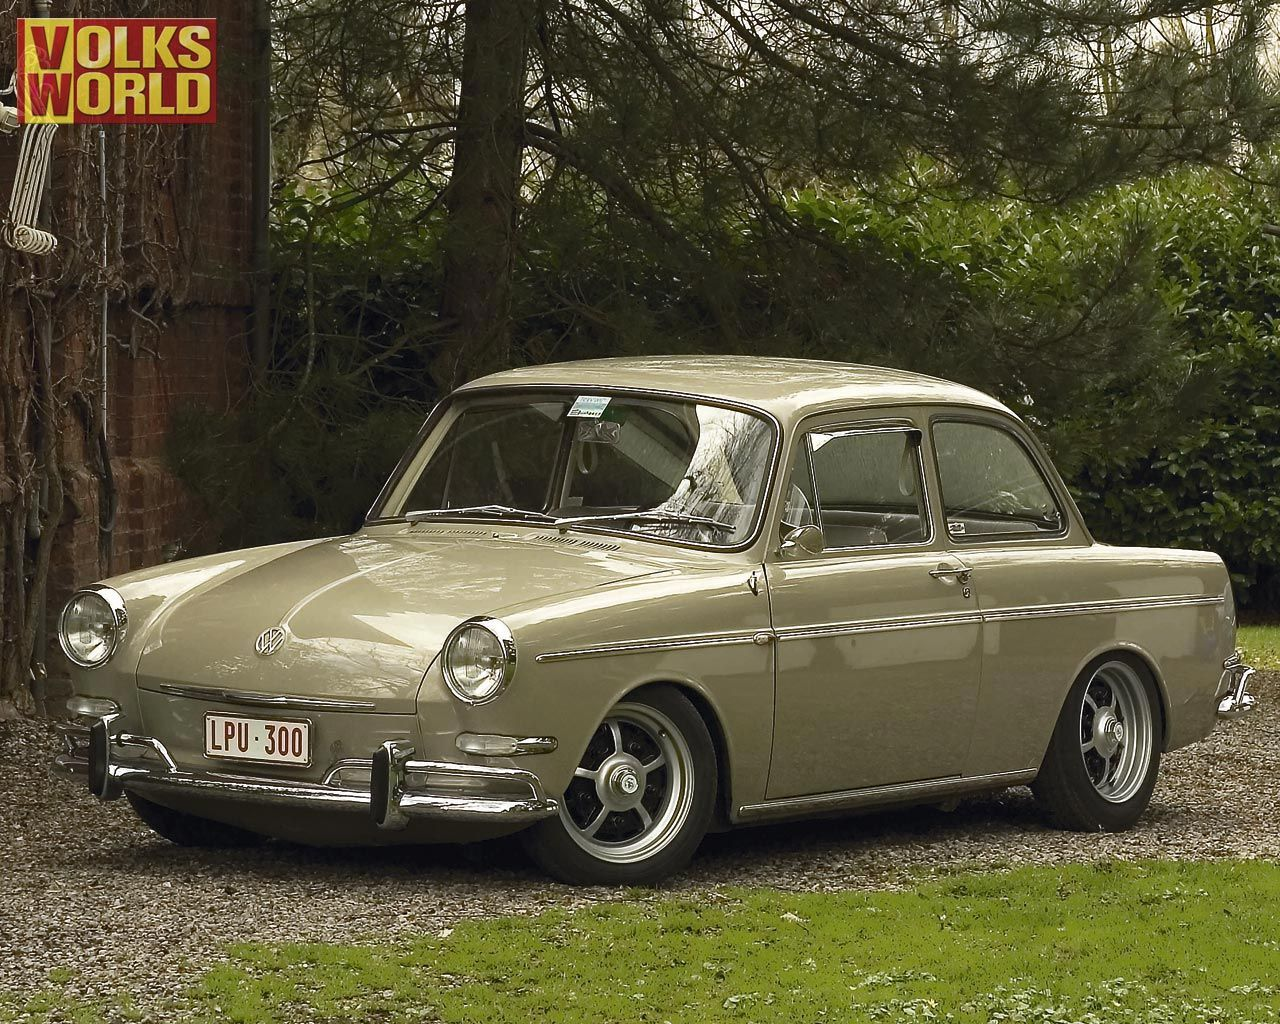 Volkswagen Type 3 Cool If Your Into Vw Because It Is Not A Bug If